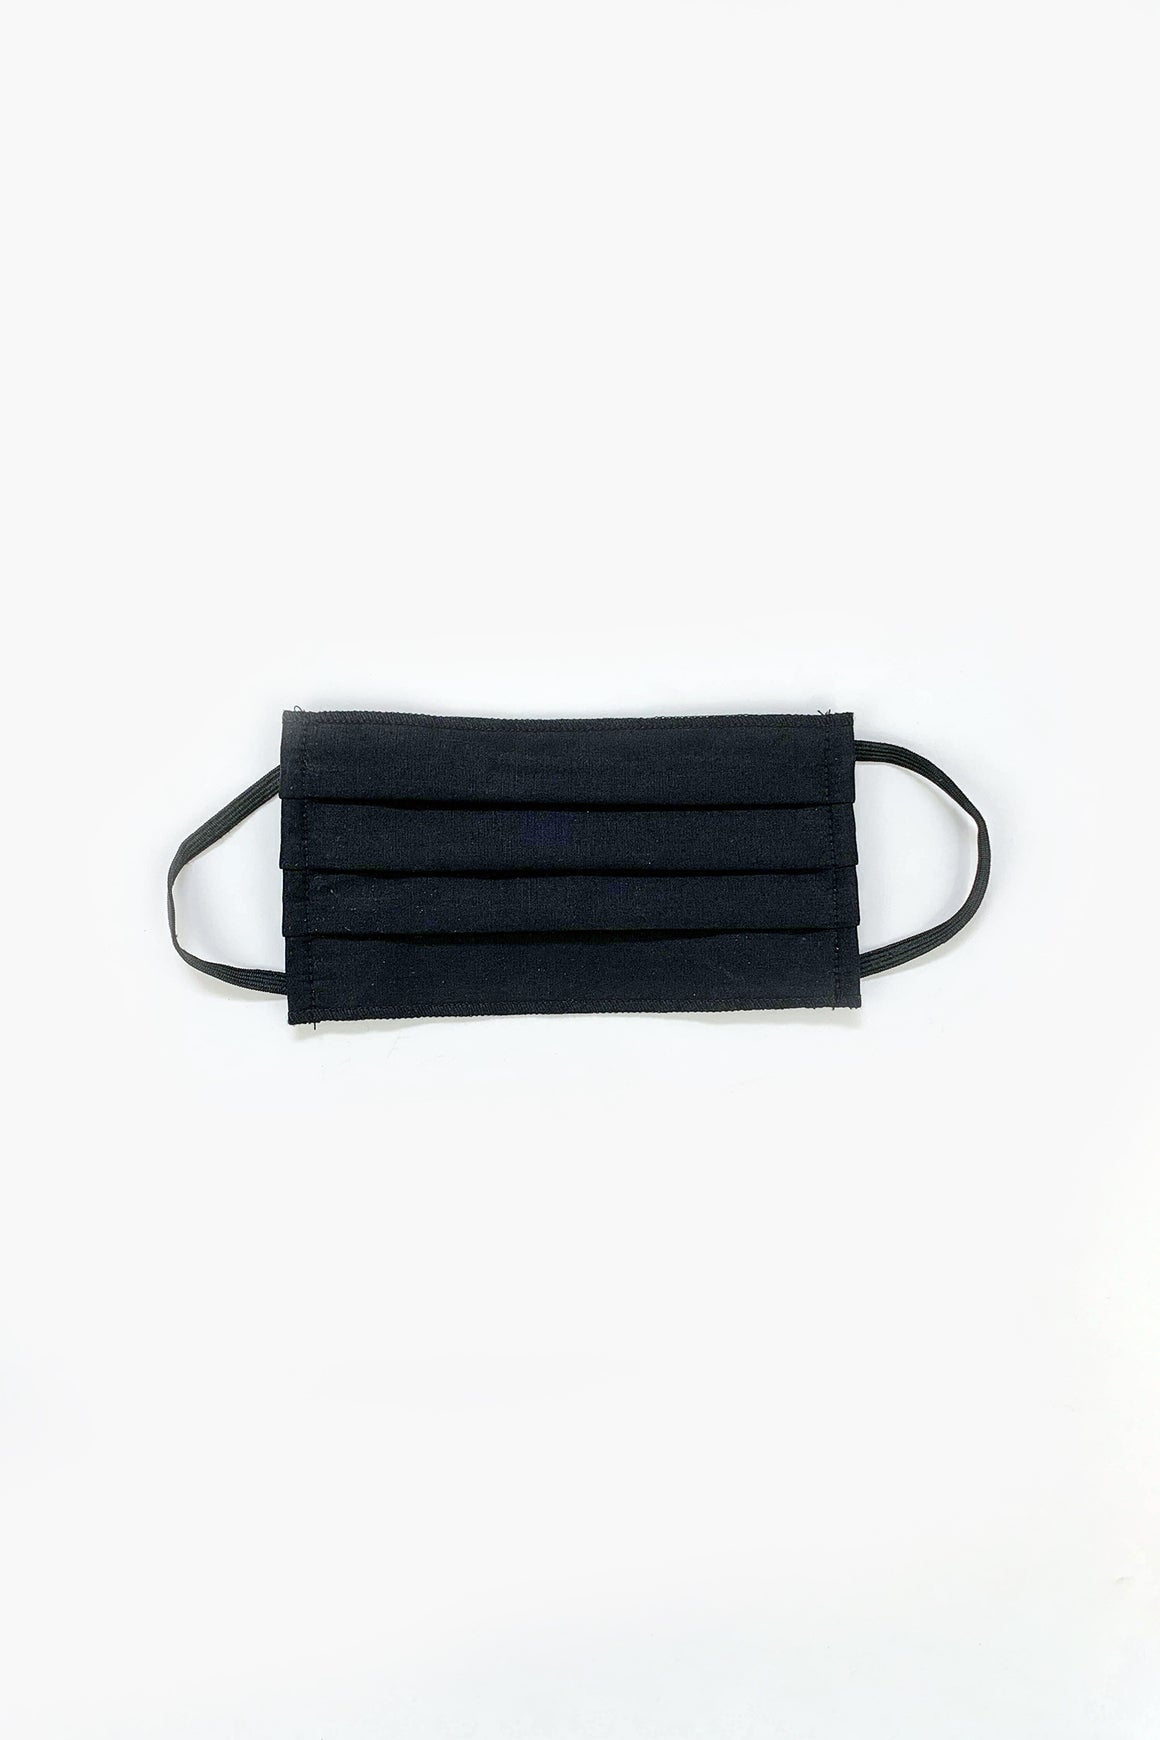 Pleated Face Mask in Classic Black